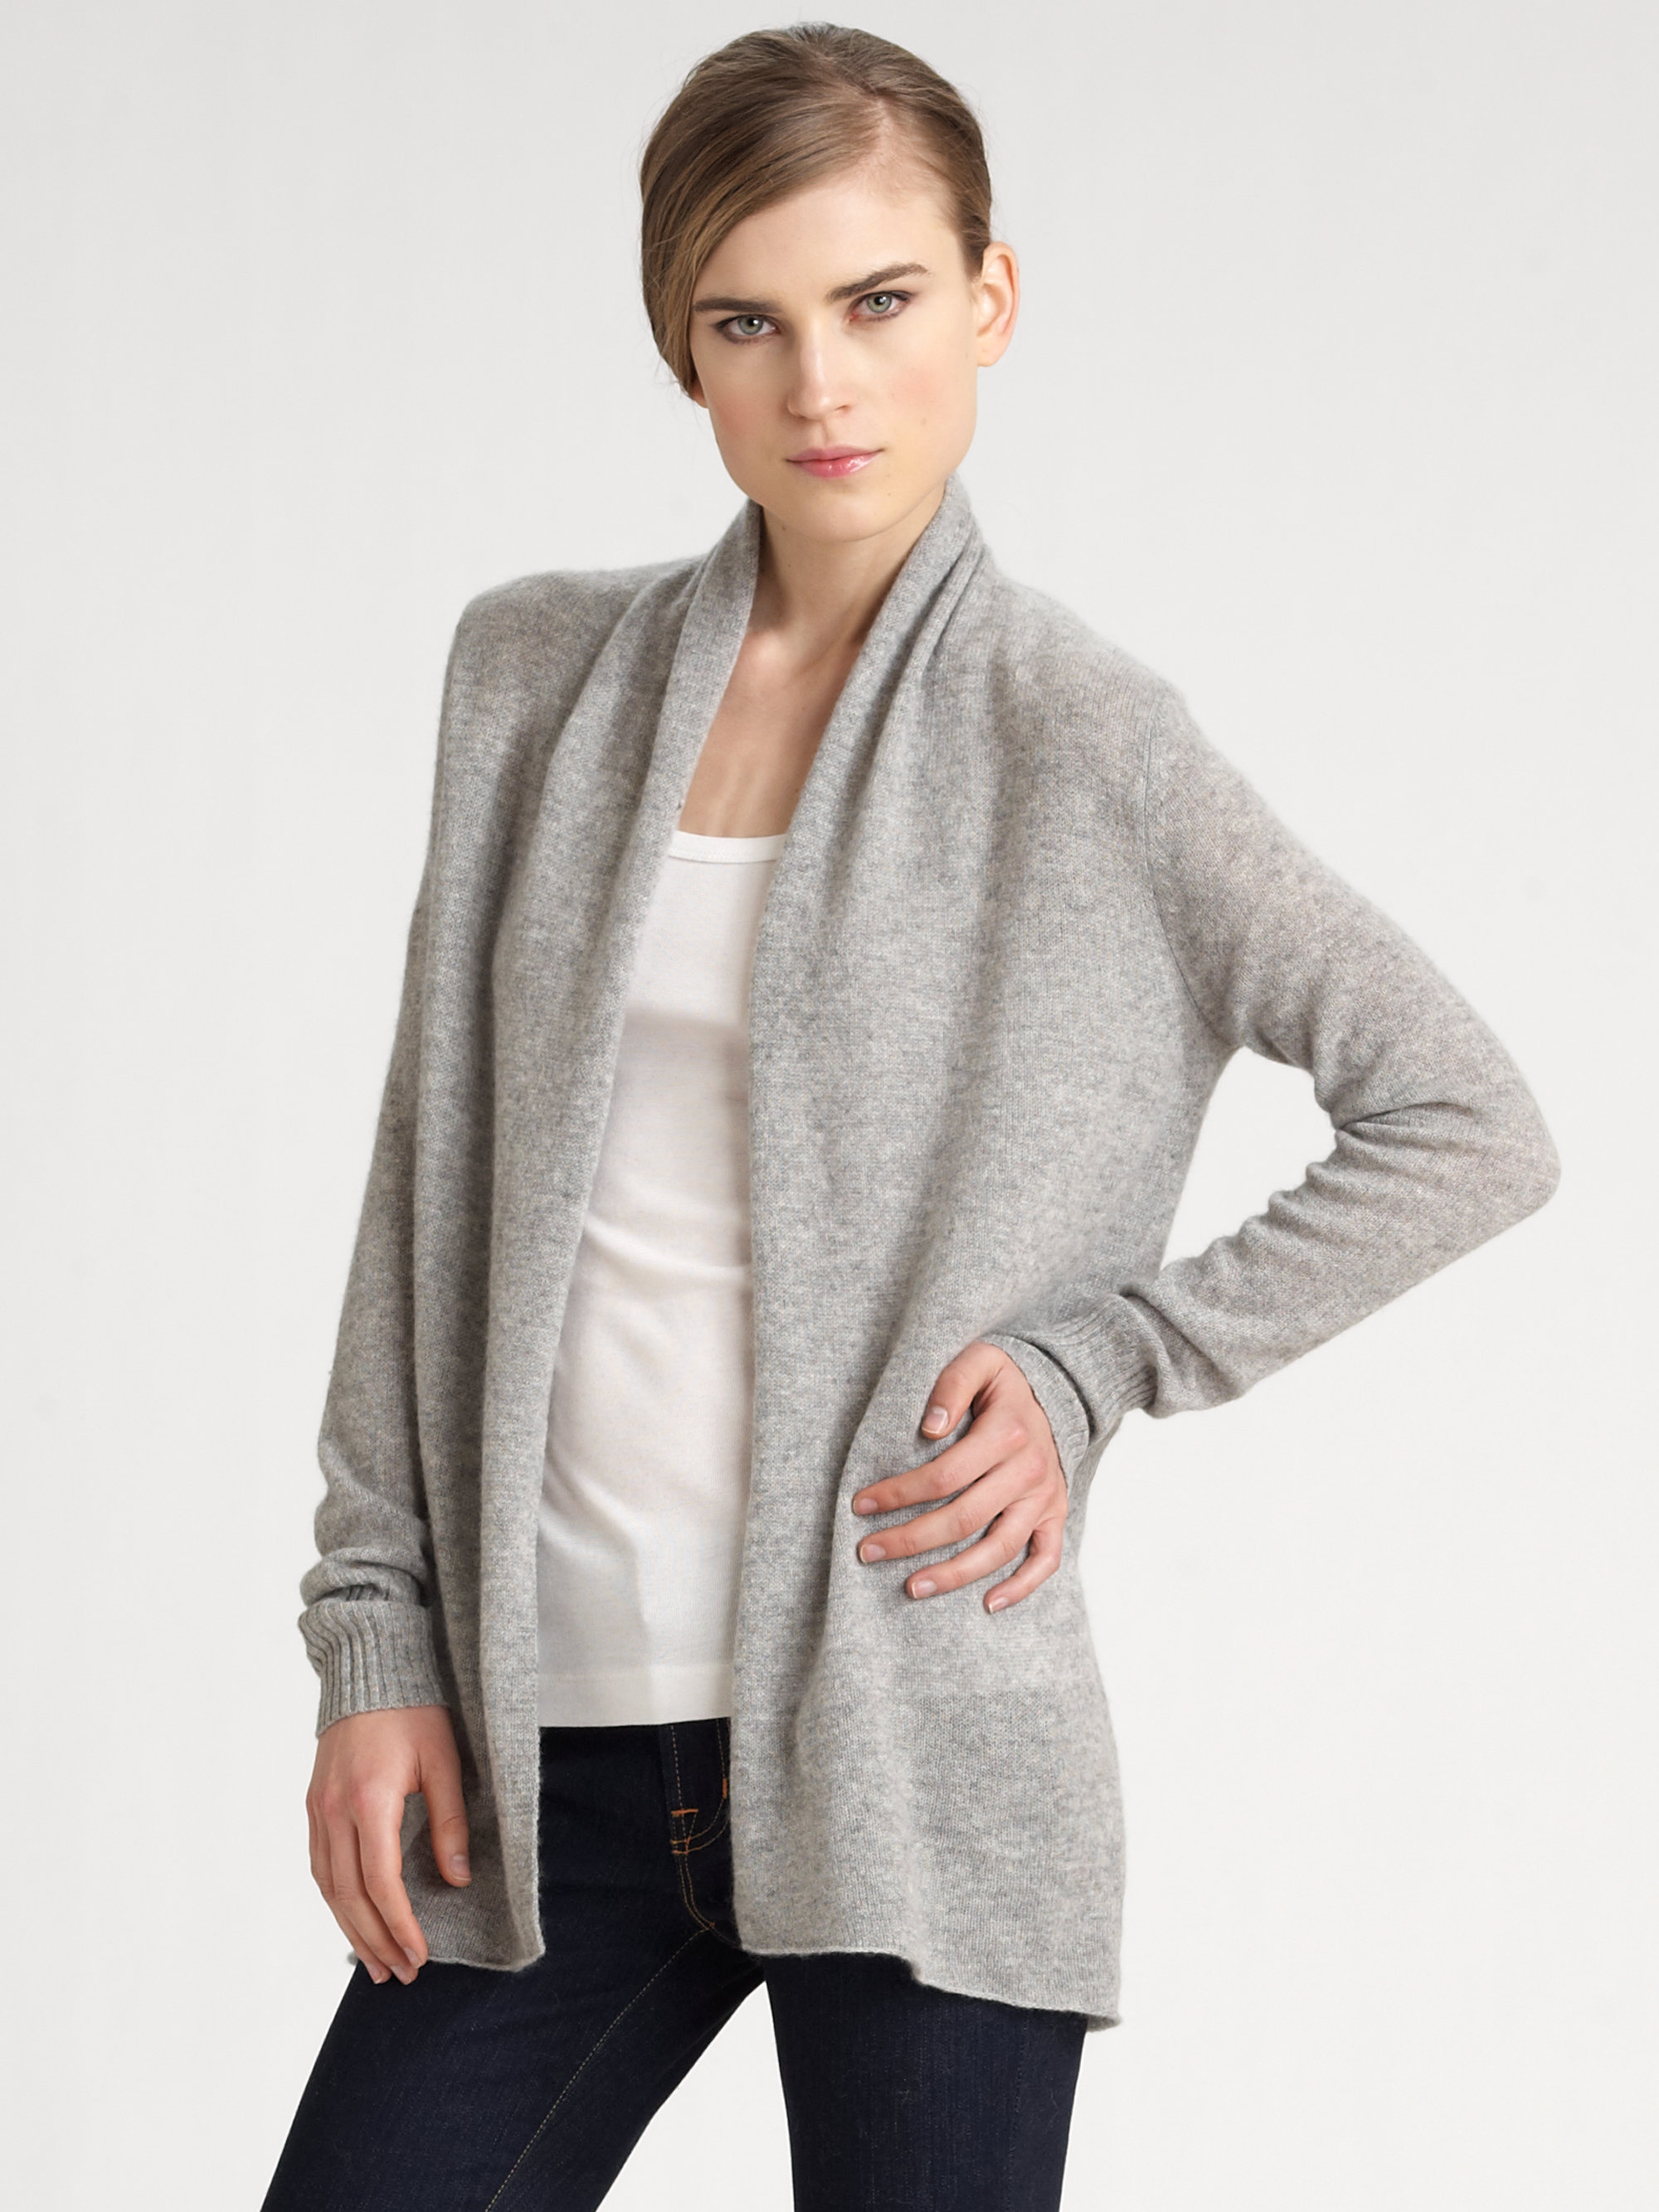 White   warren Cashmere Cardigan in Metallic | Lyst